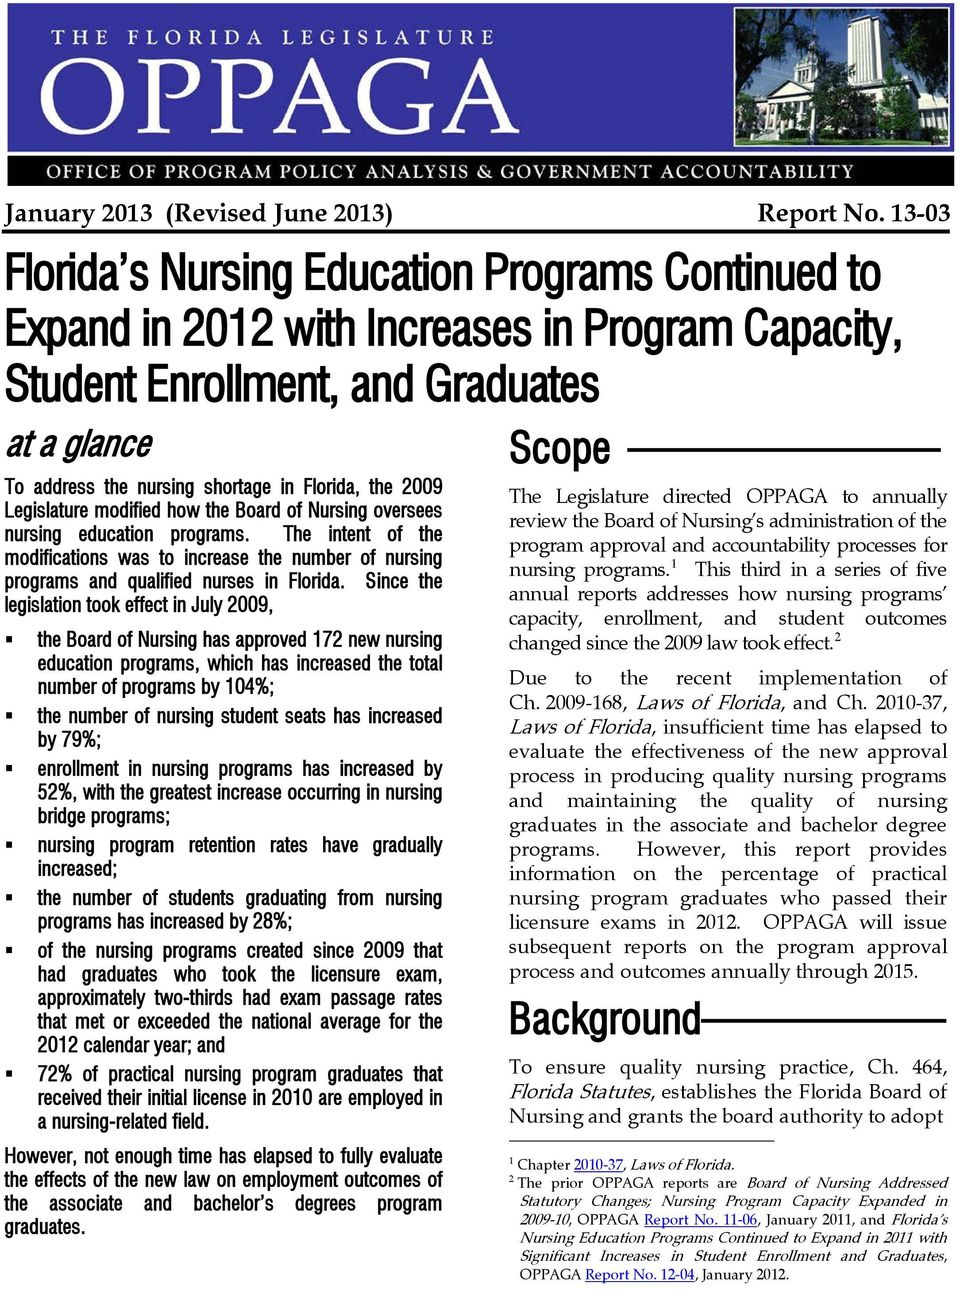 2009 Legislature modified how the Board of Nursing oversees nursing education programs. The intent of the modifications was to increase the number of nursing programs and qualified nurses in Florida.